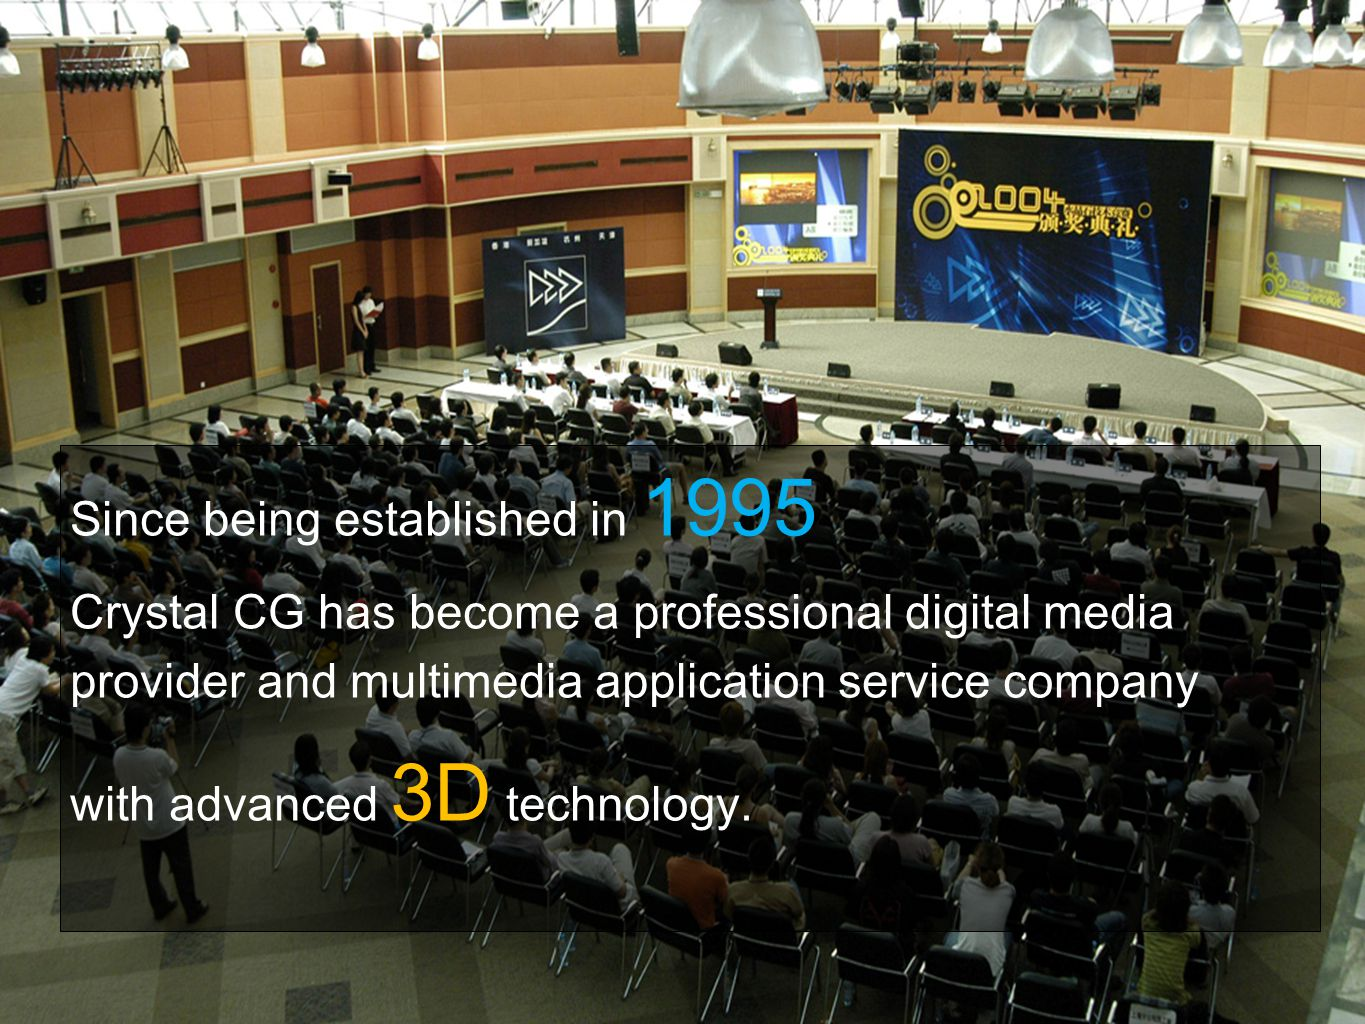 Since being established in 1995 Crystal CG has become a professional digital media provider and multimedia application service company with advanced 3D technology.